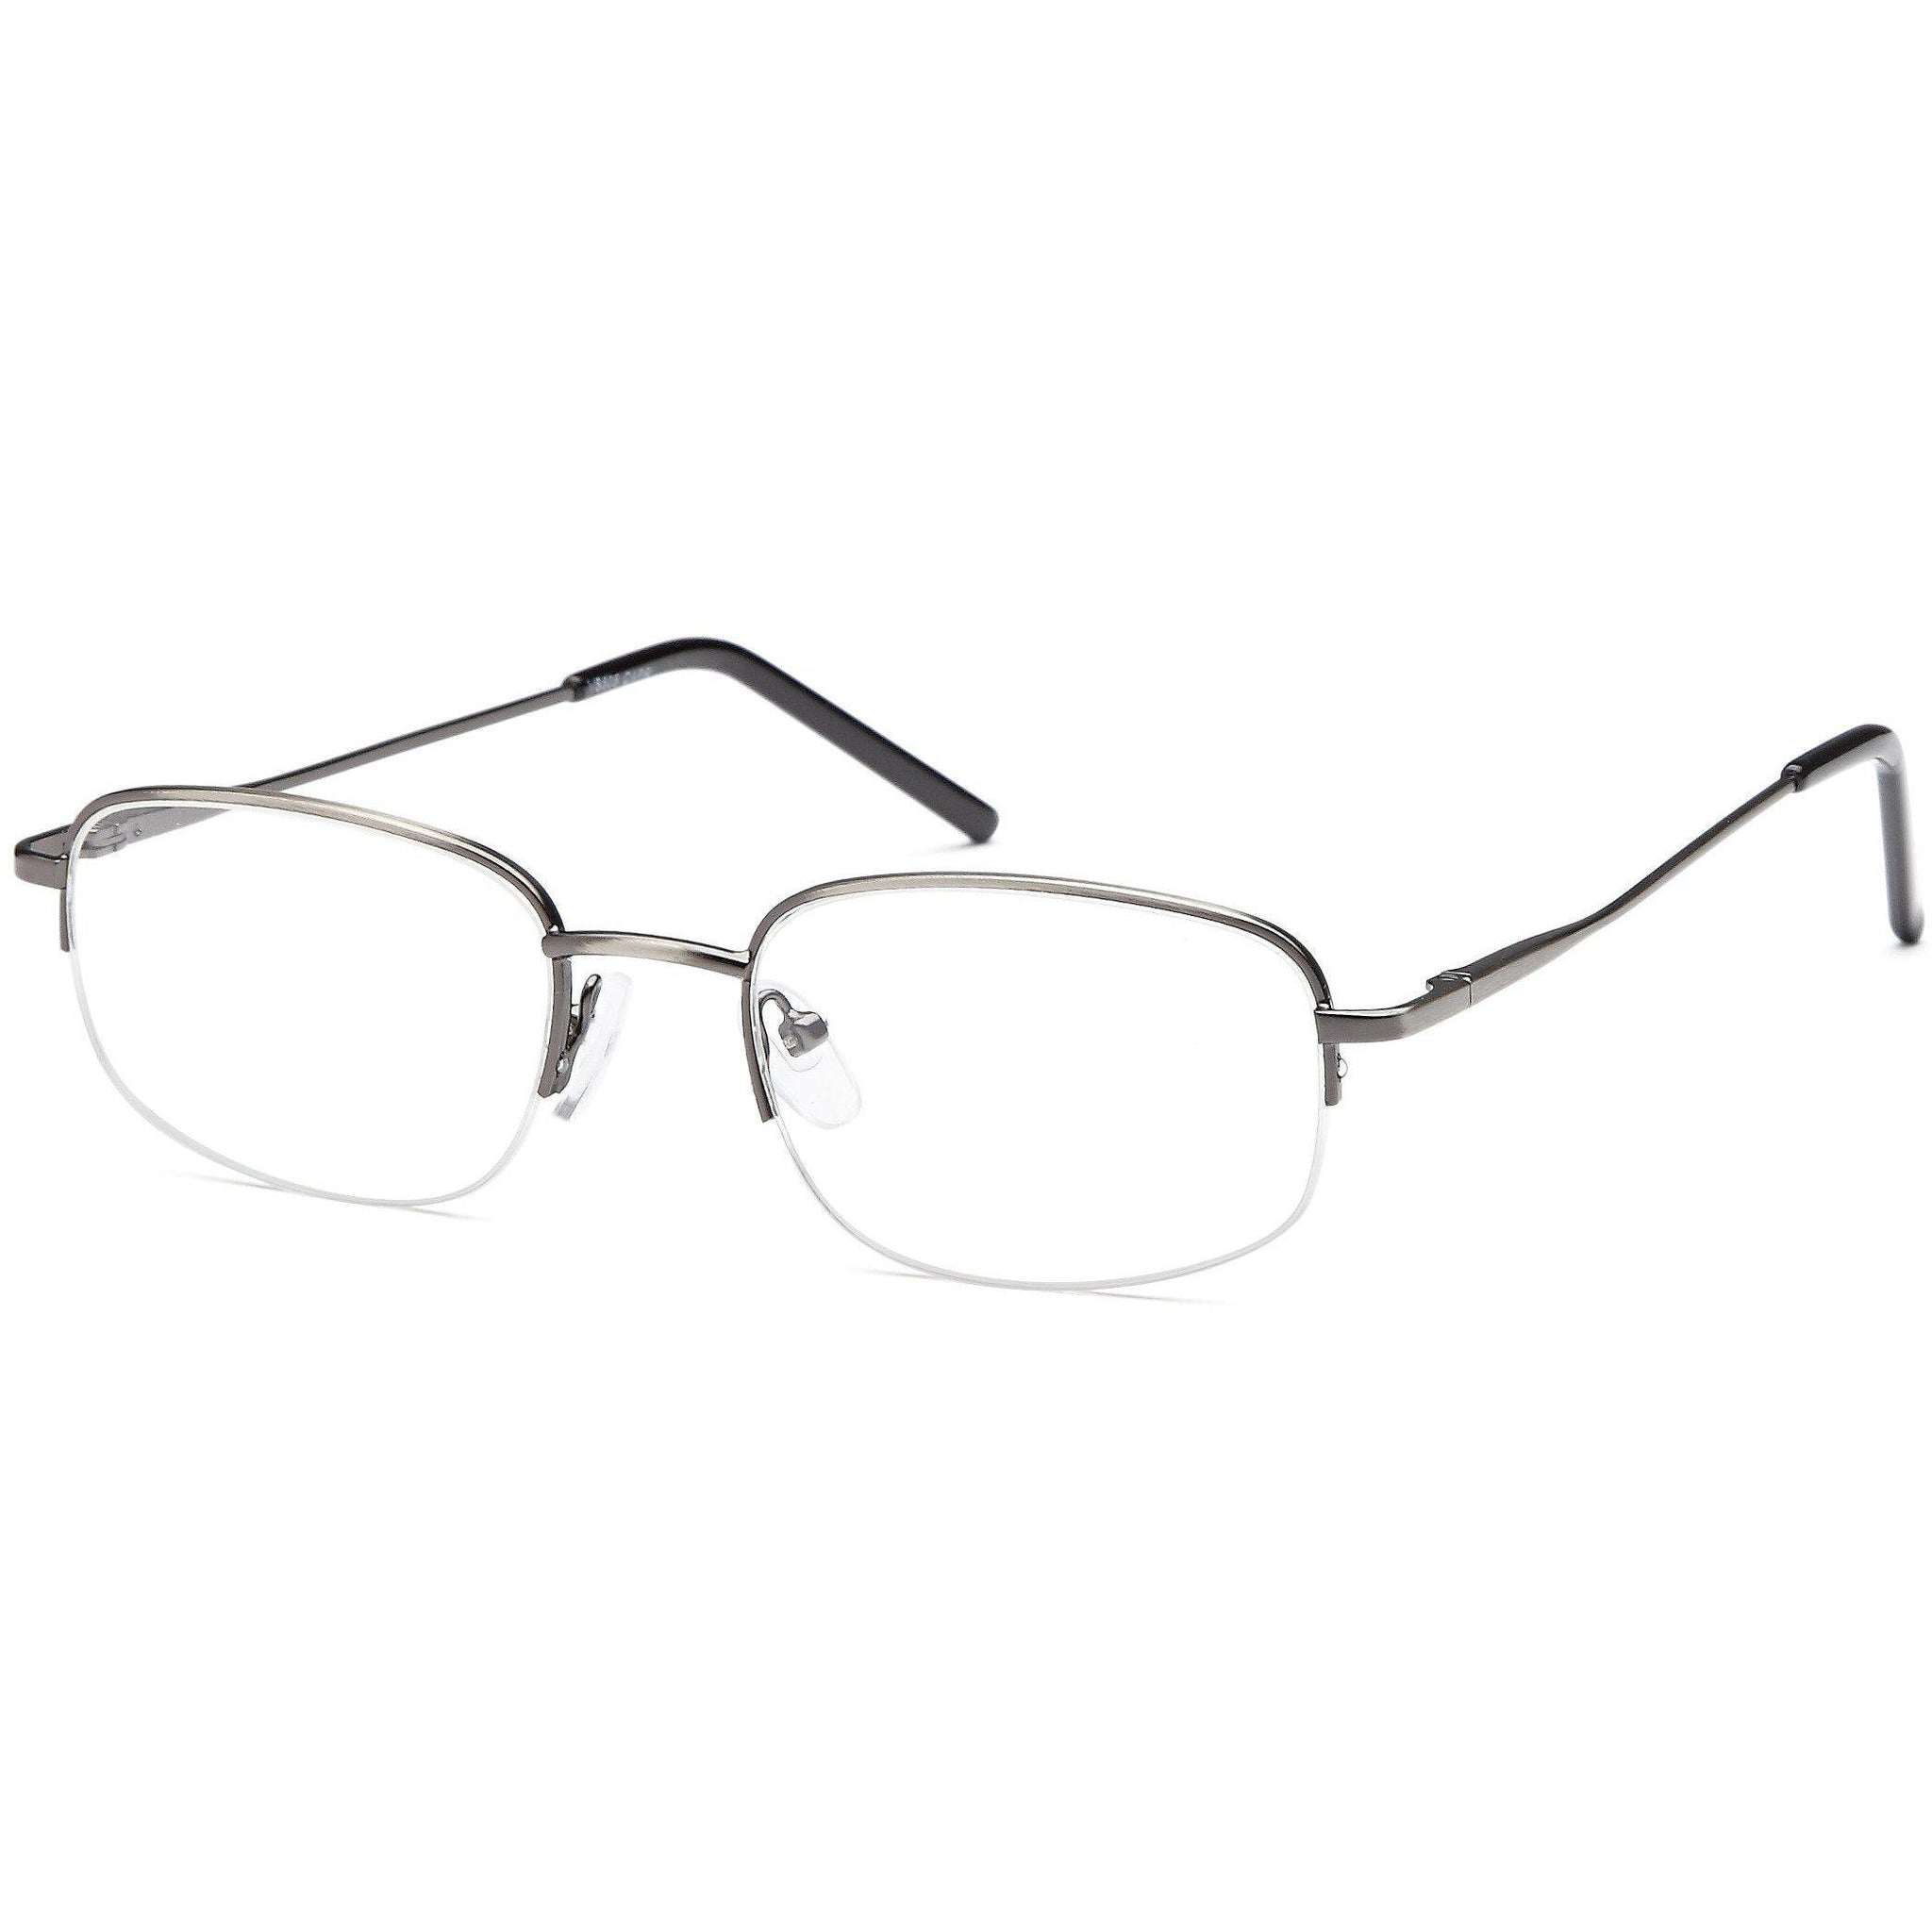 Classics Prescription Glasses VS 505 Frames